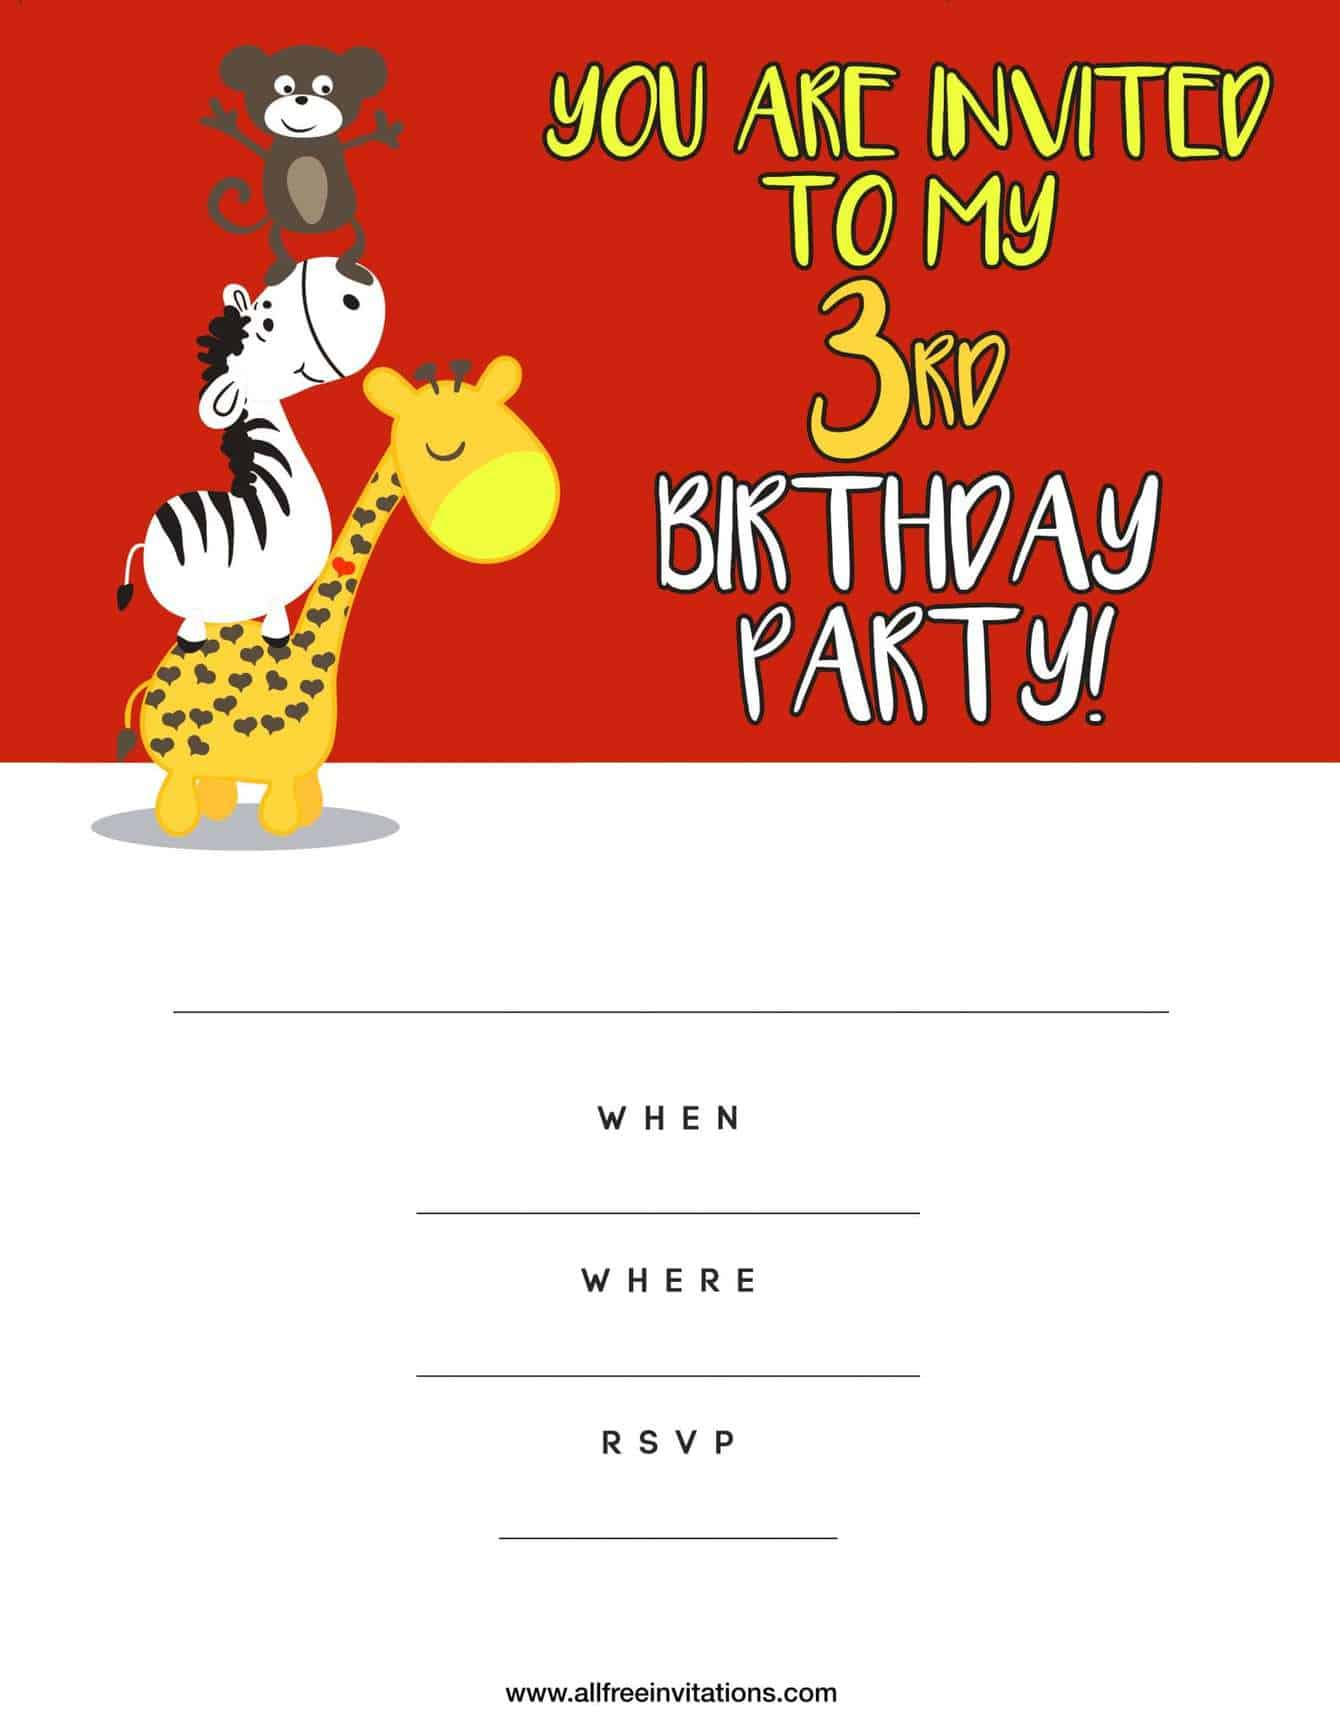 3rd Birthday Party Invitation Red Animals